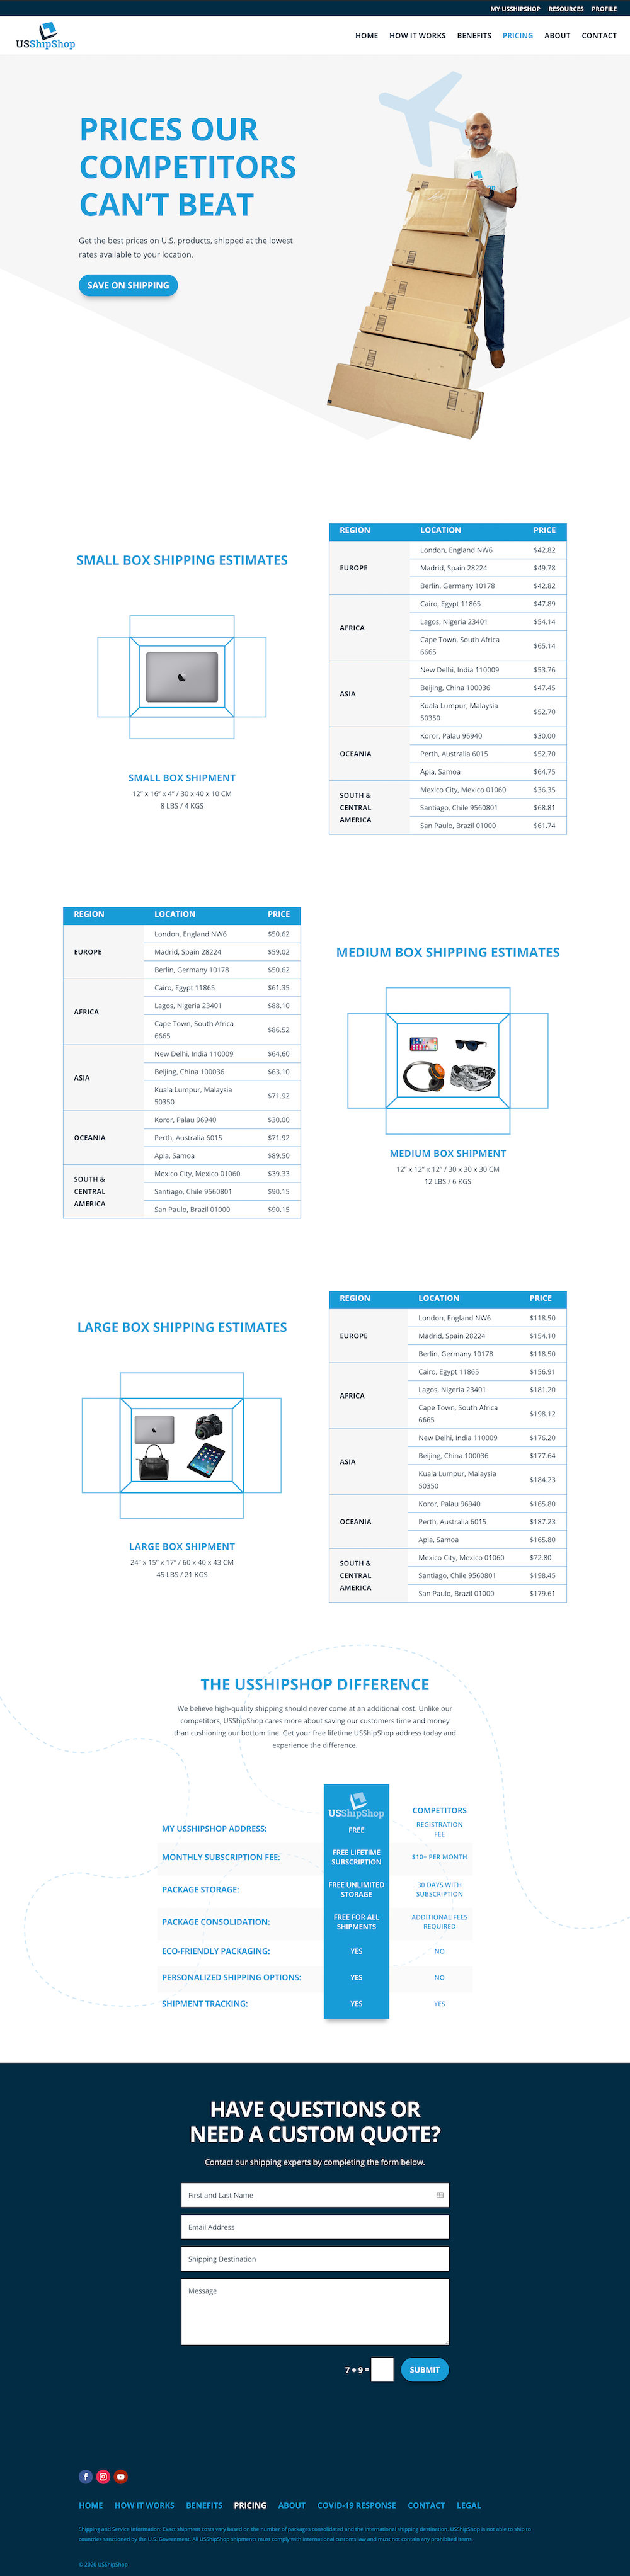 USShipShop Pricing Page